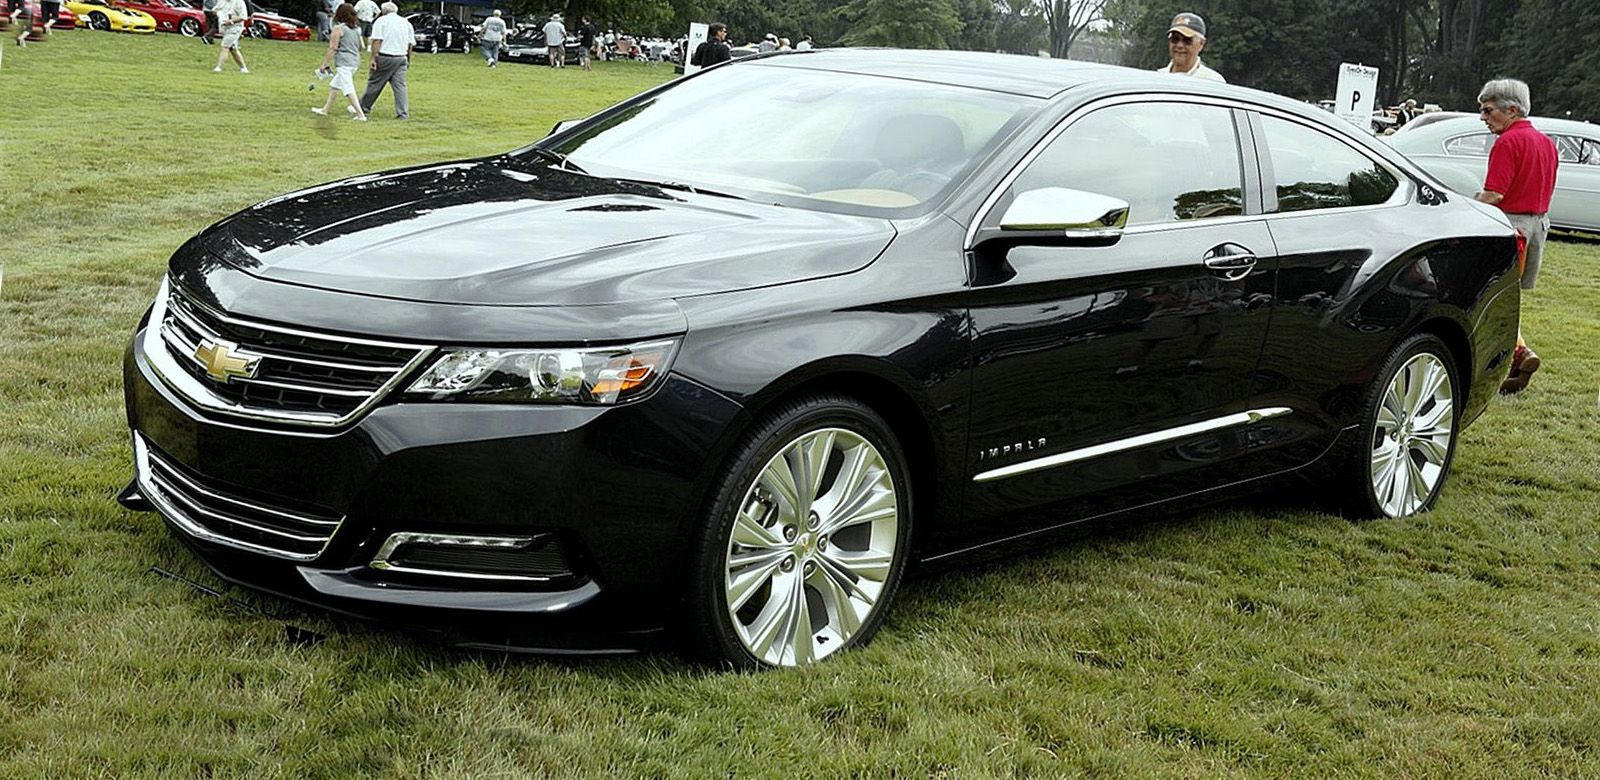 2015 Chevy Impala ss Price and Release Date New Cars for